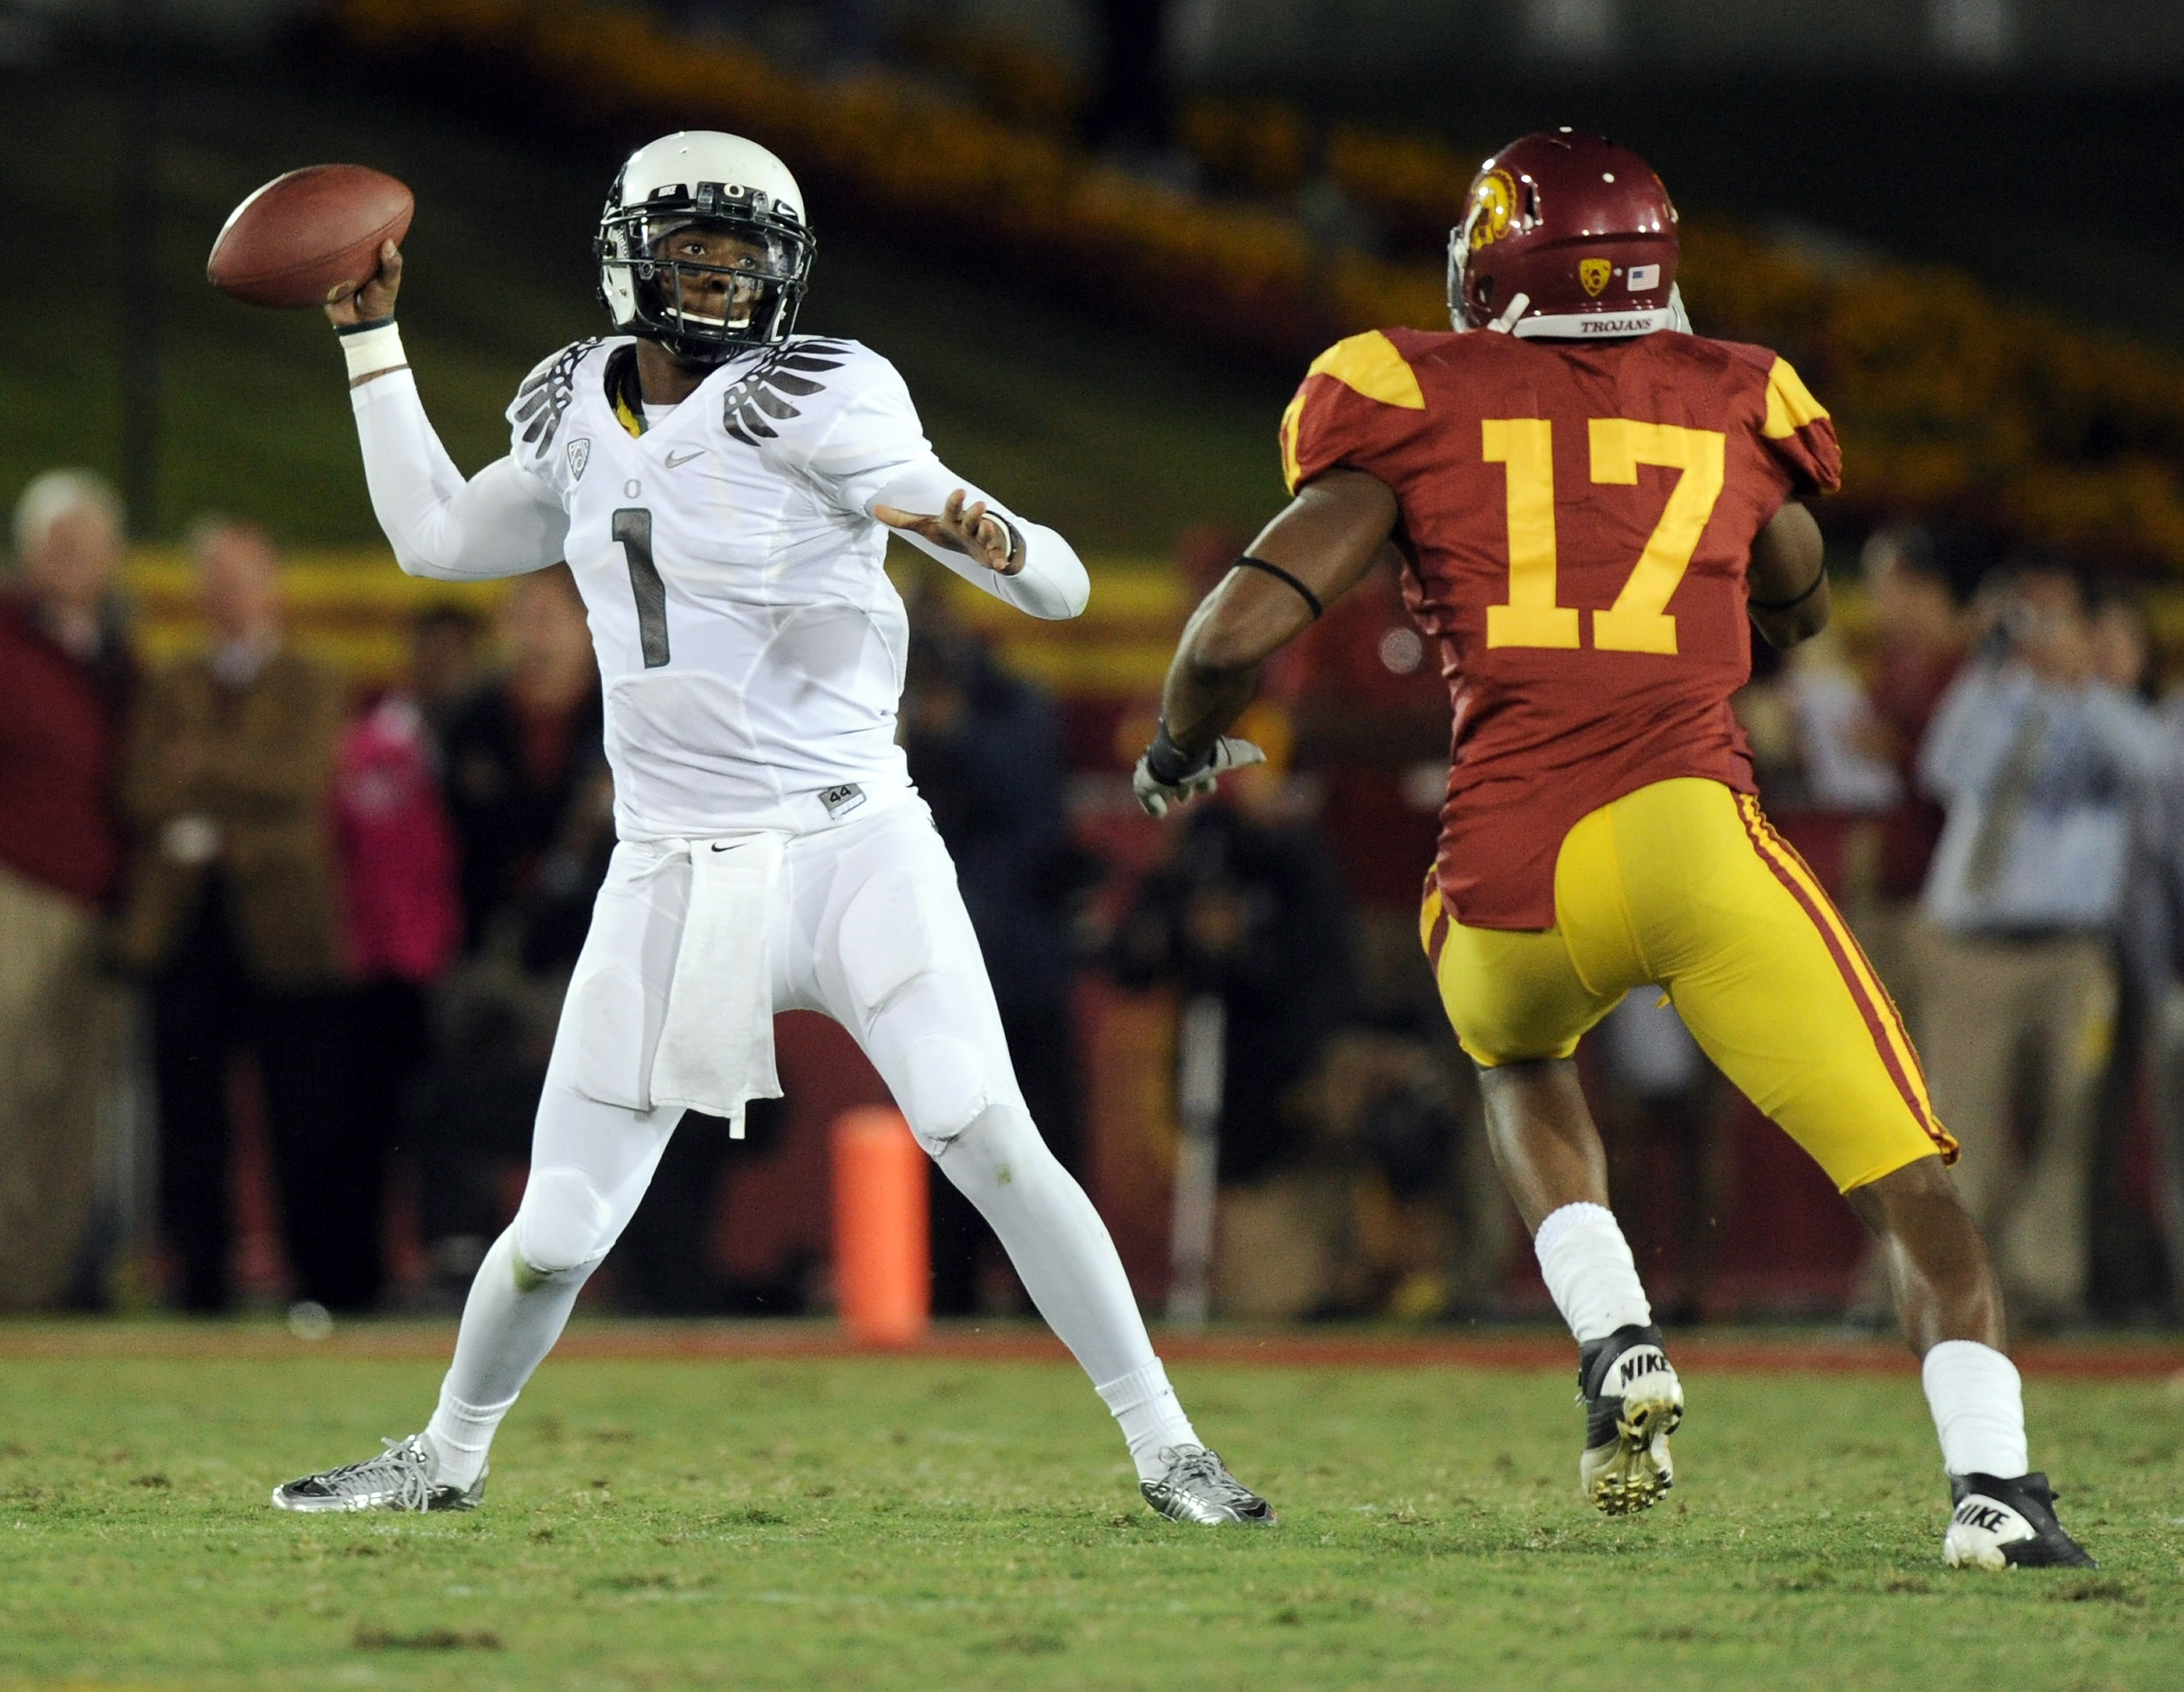 LOS ANGELES, CA - OCTOBER 30:  Darron Thomas #1 of the Oregon Ducks passes in front of Michael Morgan #17 of the USC Trojans during the second quarter at Los Angeles Memorial Coliseum on October 30, 2010 in Los Angeles, California.  (Photo by Harry How/Ge